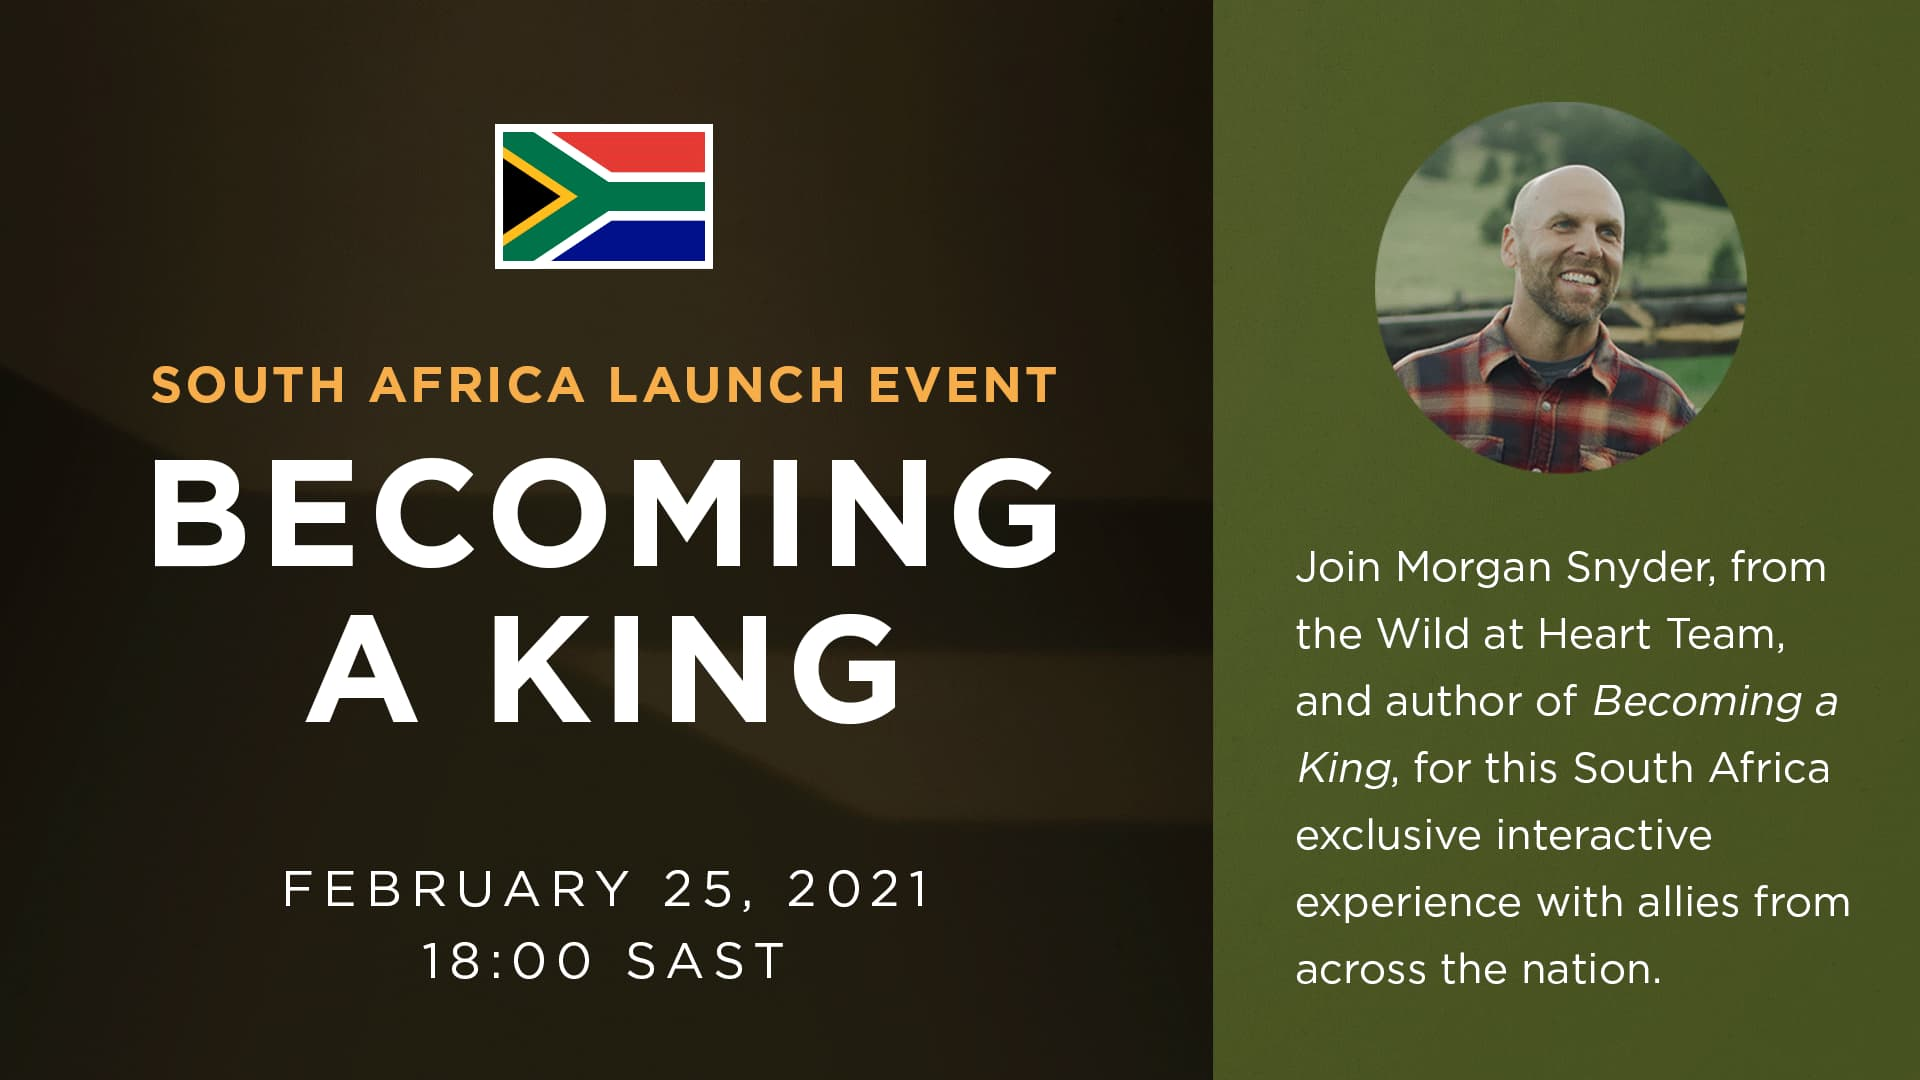 South Africa Becoming a King Launch Event